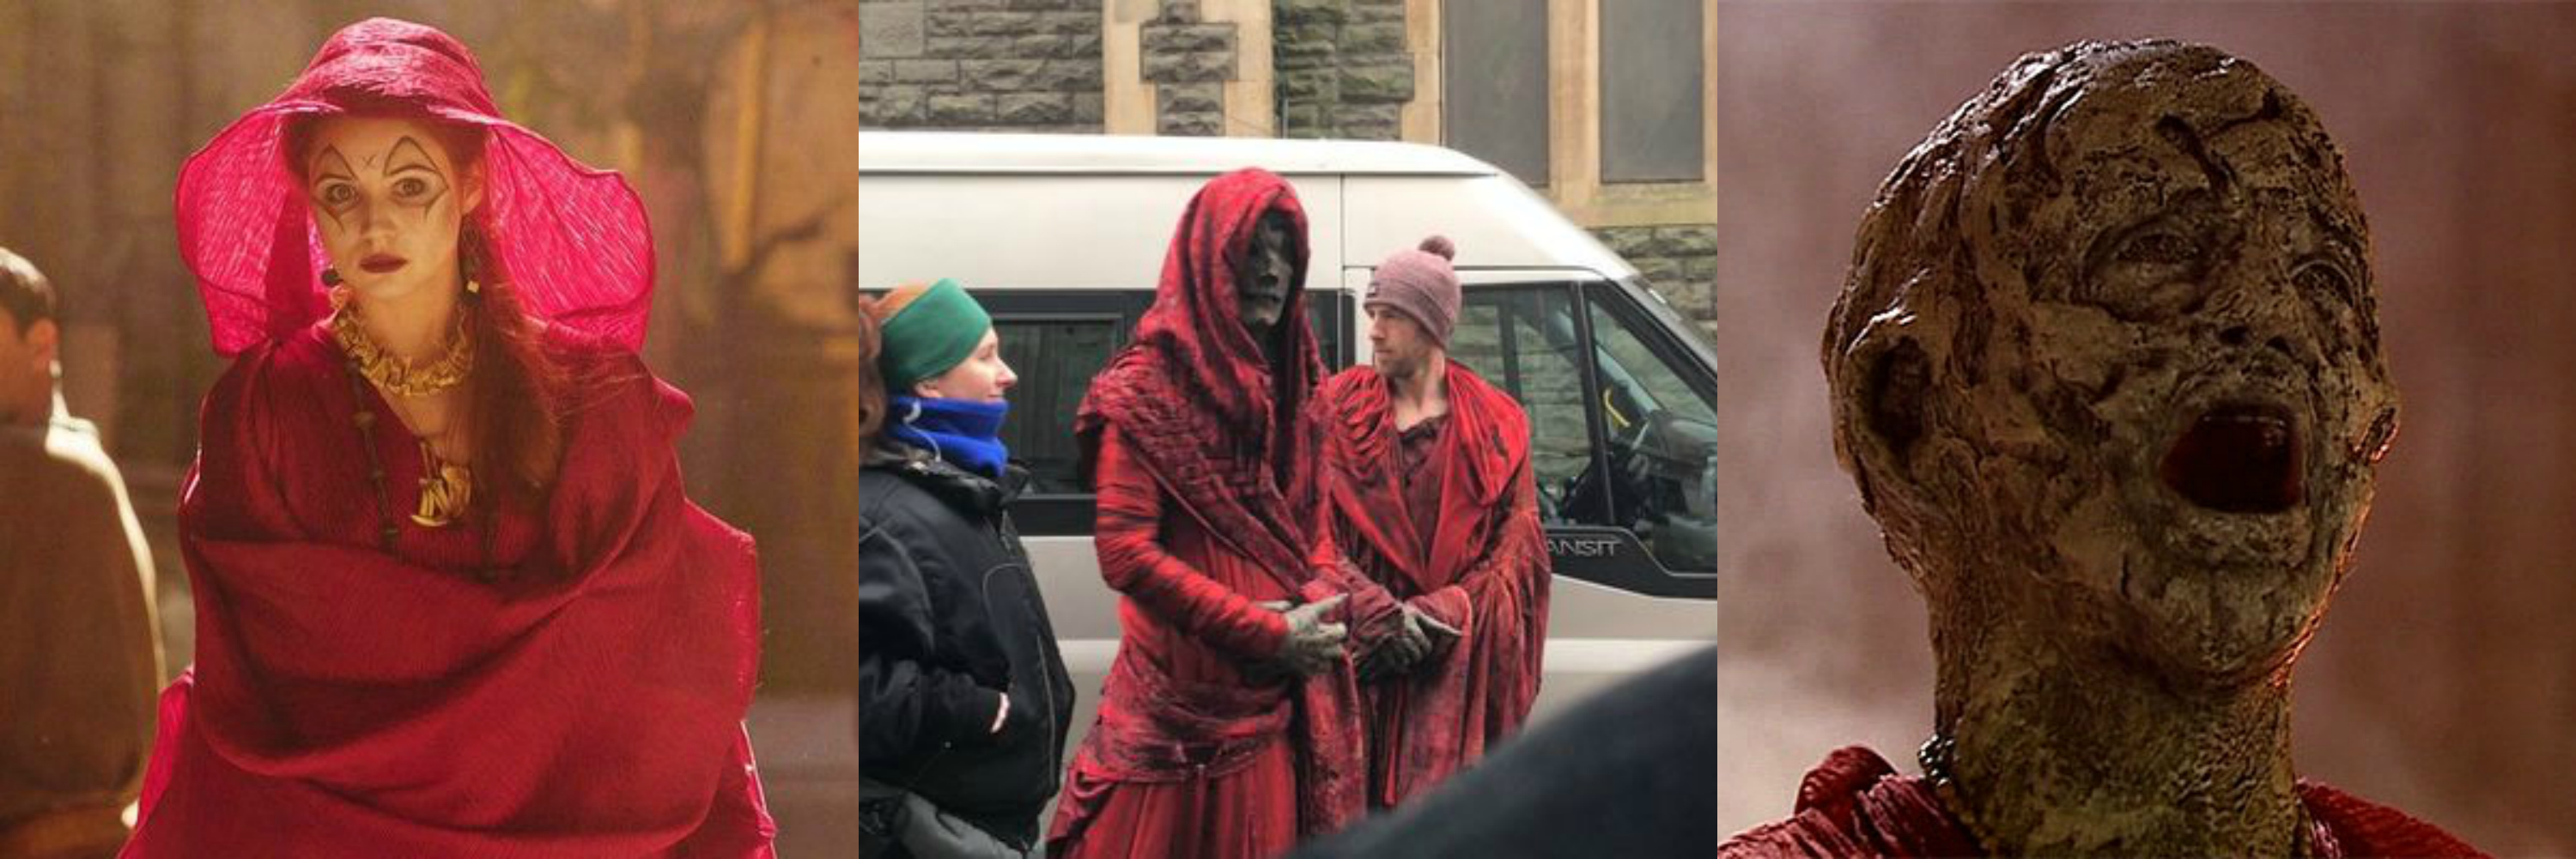 "Karen Gillan as a Sibylline Sister in ""Fires of Pompeii,"" one of the new monsters spotted on the set of Season 10, and the High Priestess of the Sibylline Sisterhood in the midst of her transformation into a Pyrovile."